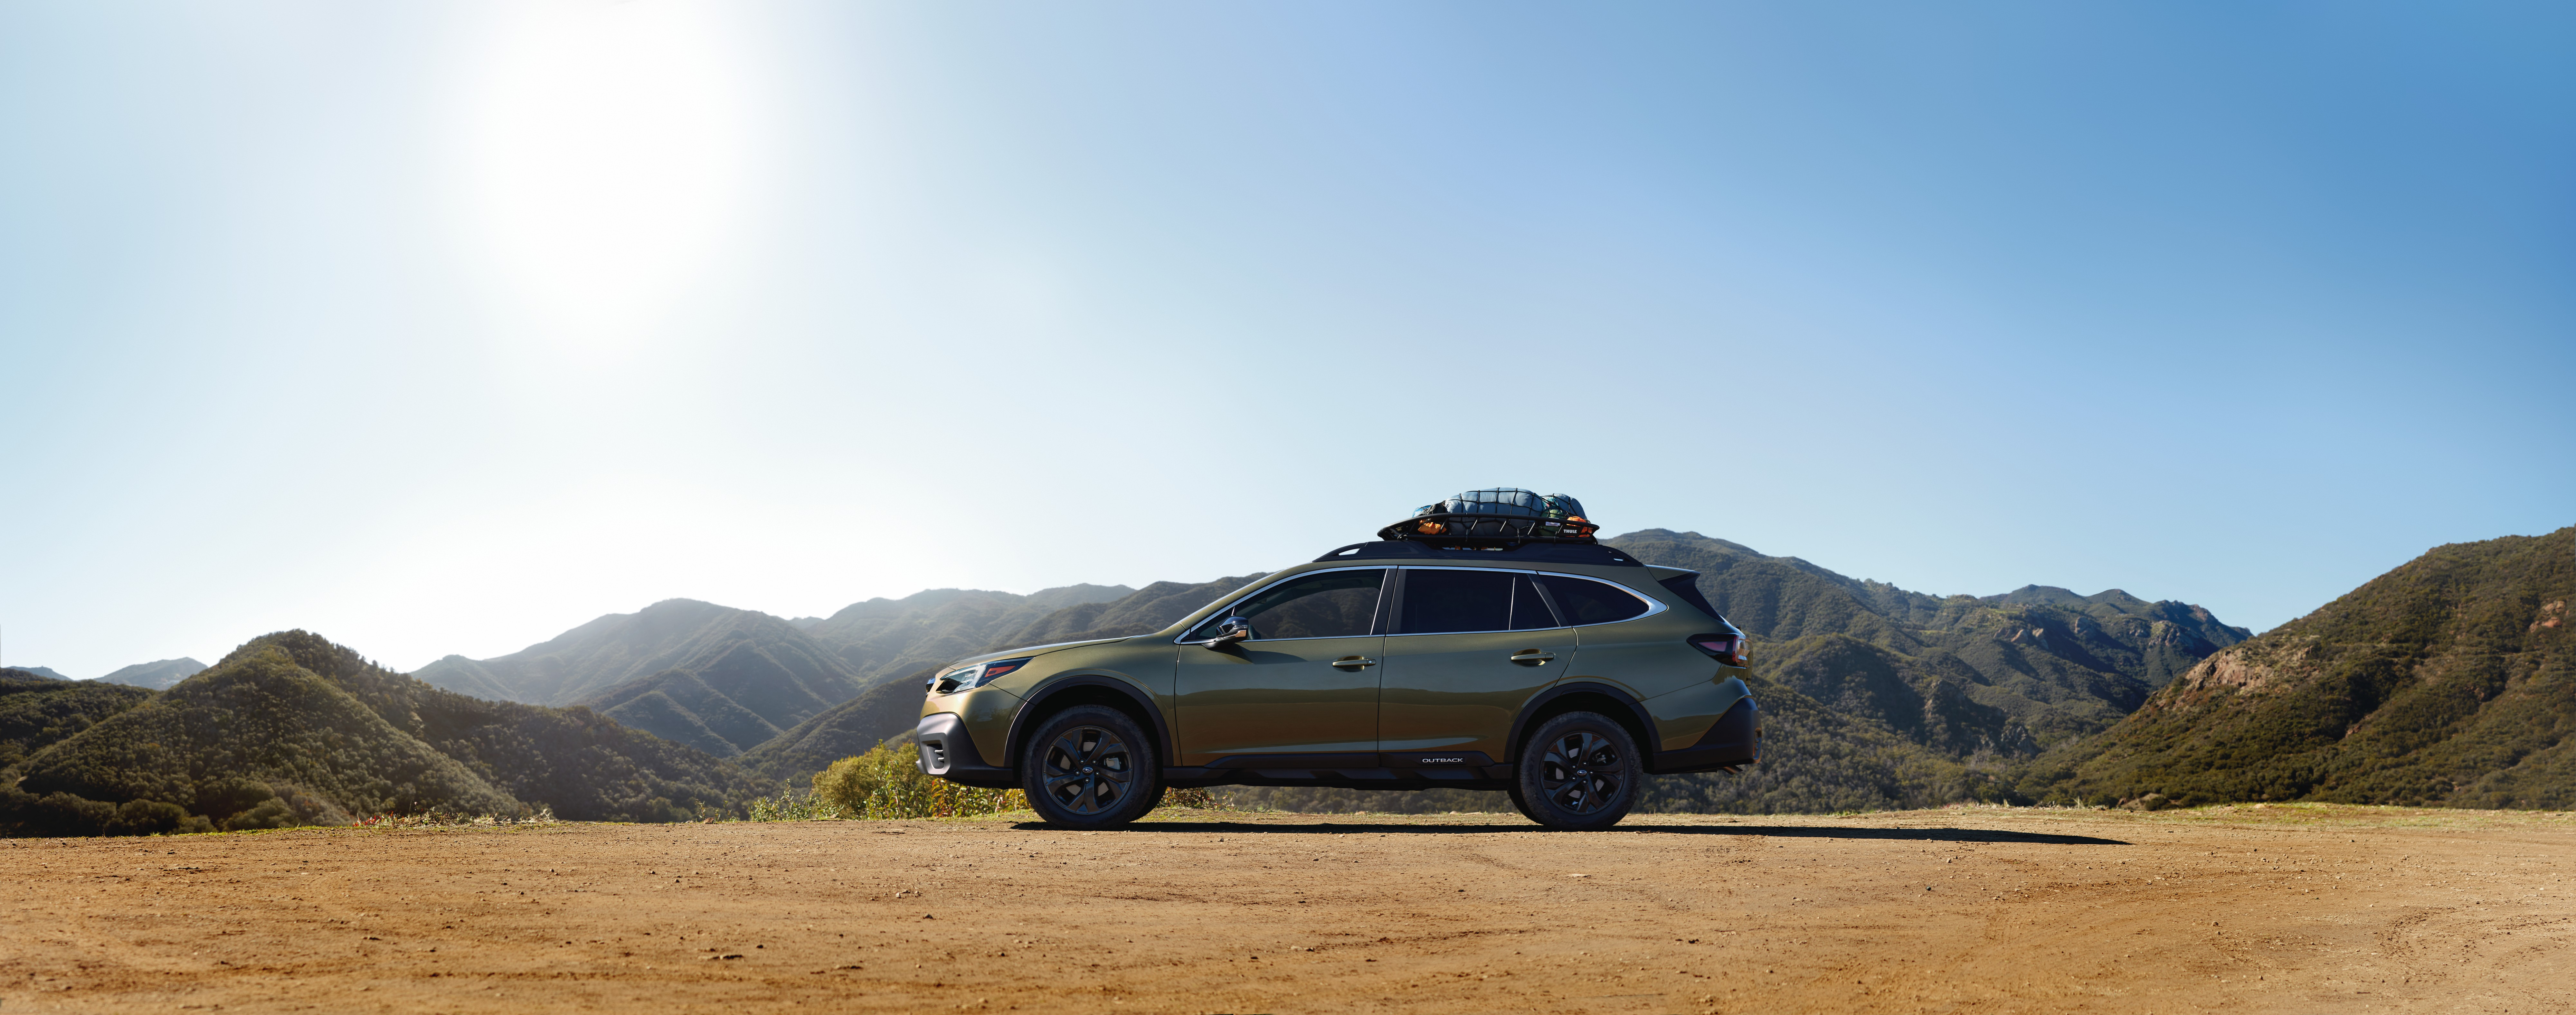 2020 Subaru Outback Debuts As The Safest, Most Capable